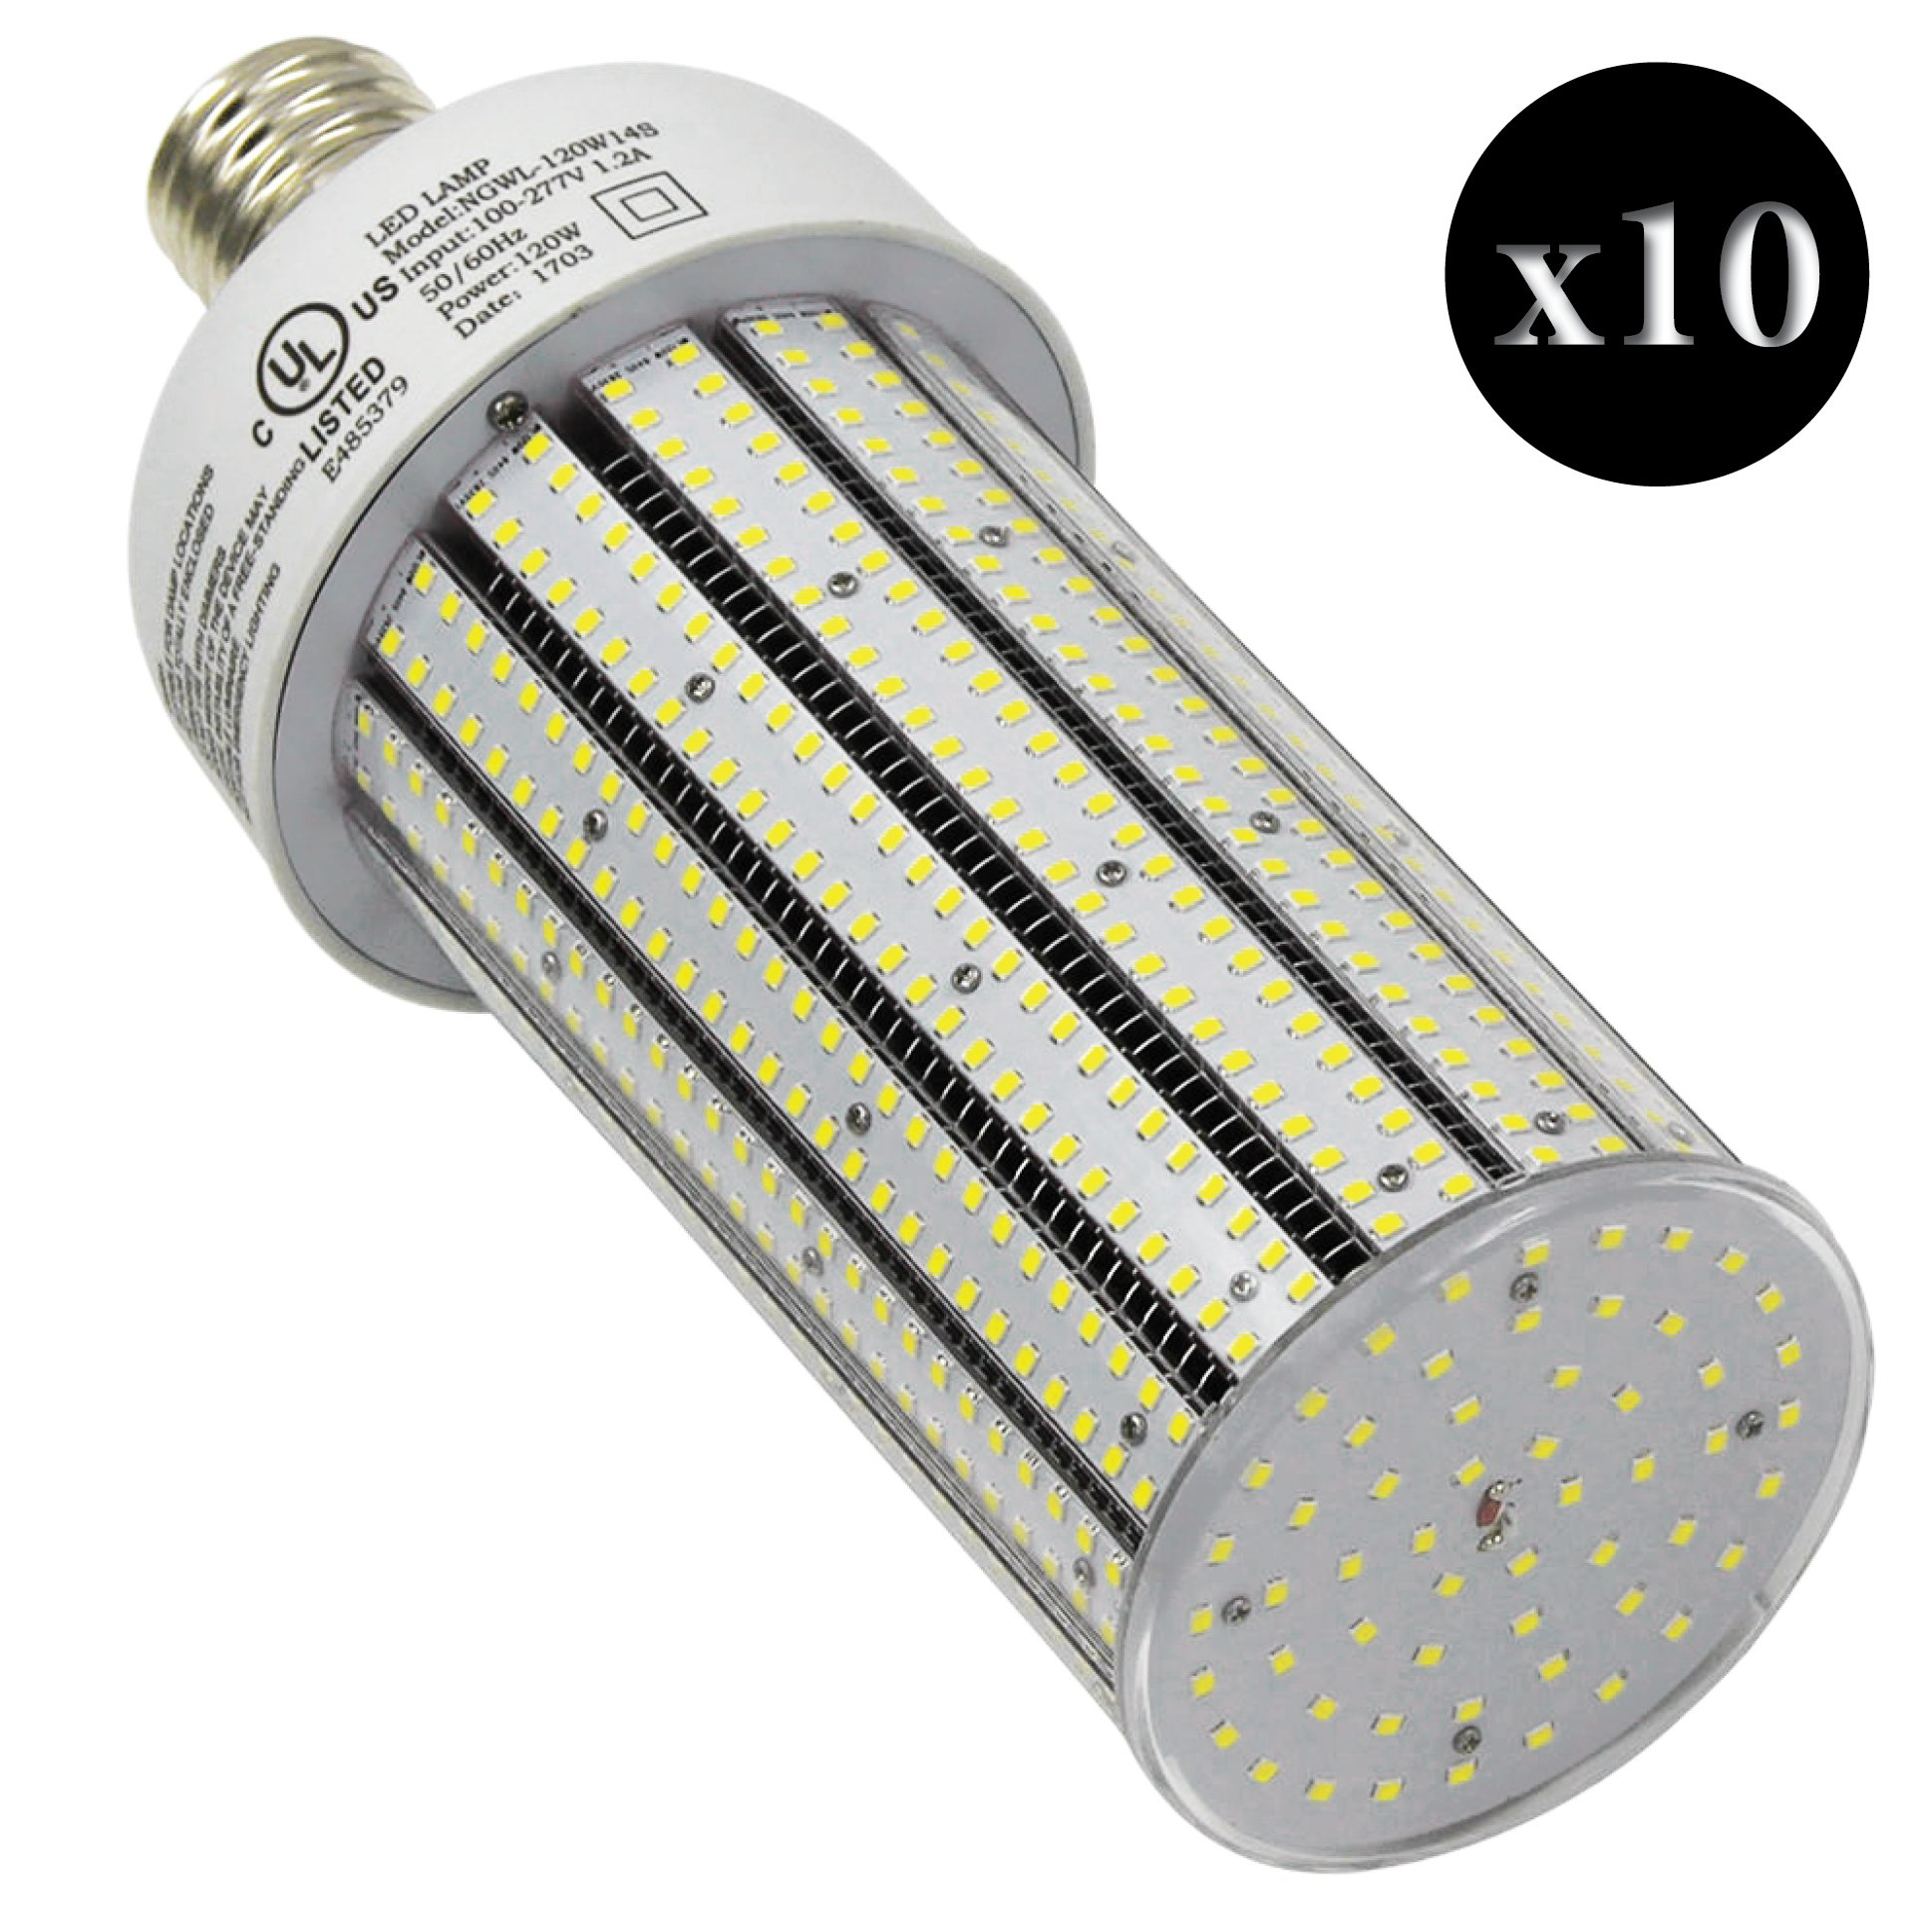 QTY 10 CC120-39 LED HIGH BAY LED POST TOP LIGHT E39 6500K WHITE 120W (EQUIVALENT TO 720W)